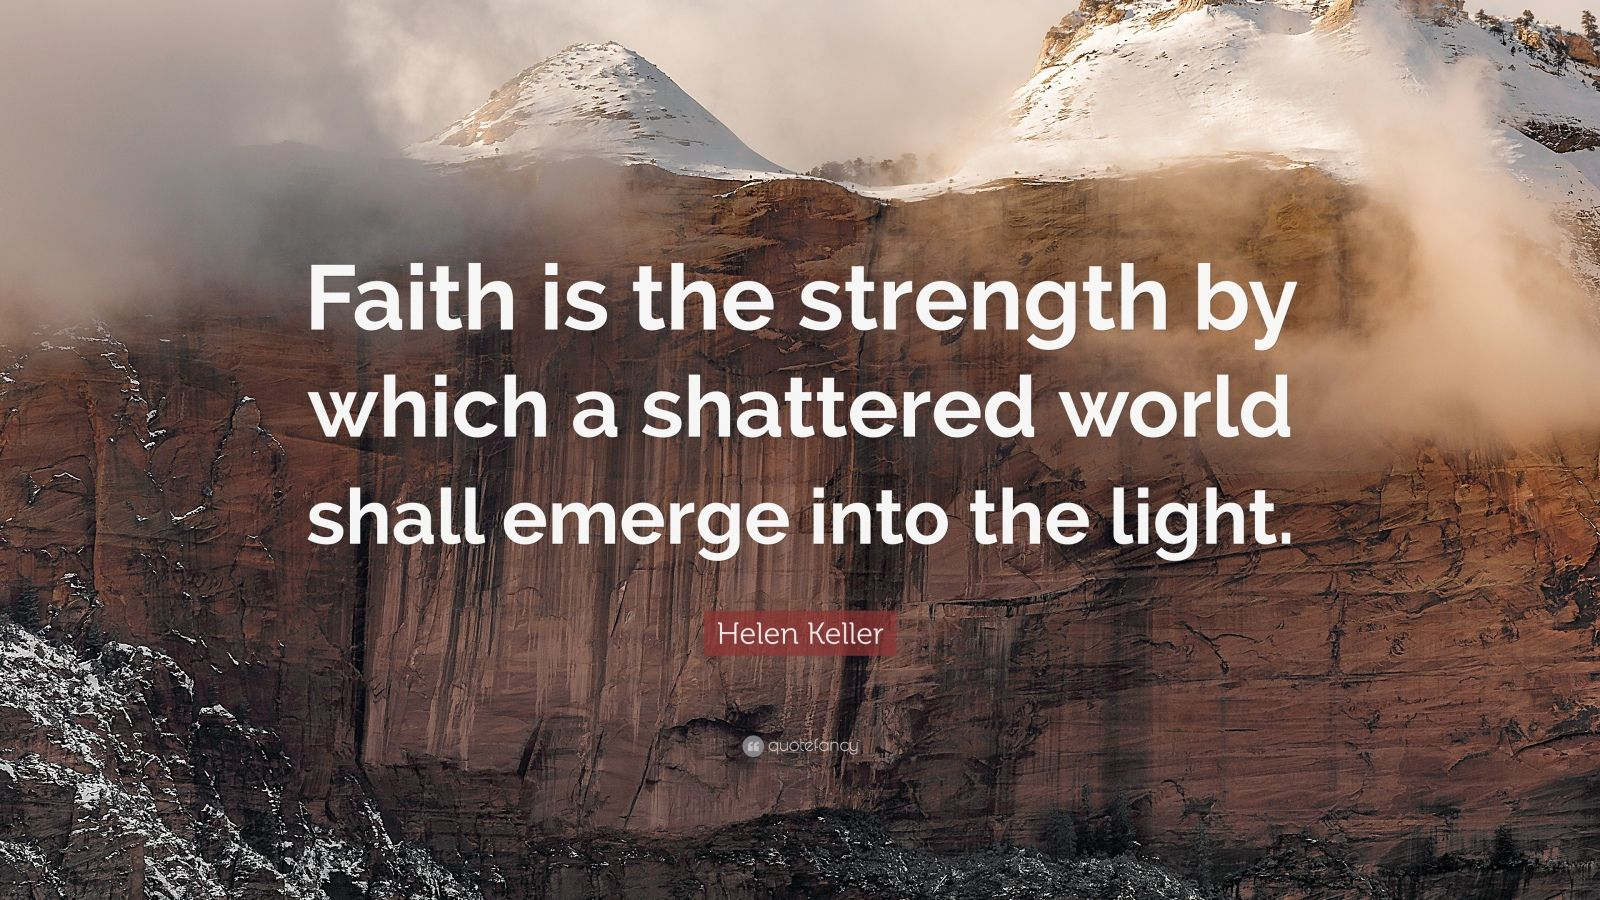 Inspiring Relationship Quotes Wallpaper Helen Keller Quote Faith Is The Strength By Which A